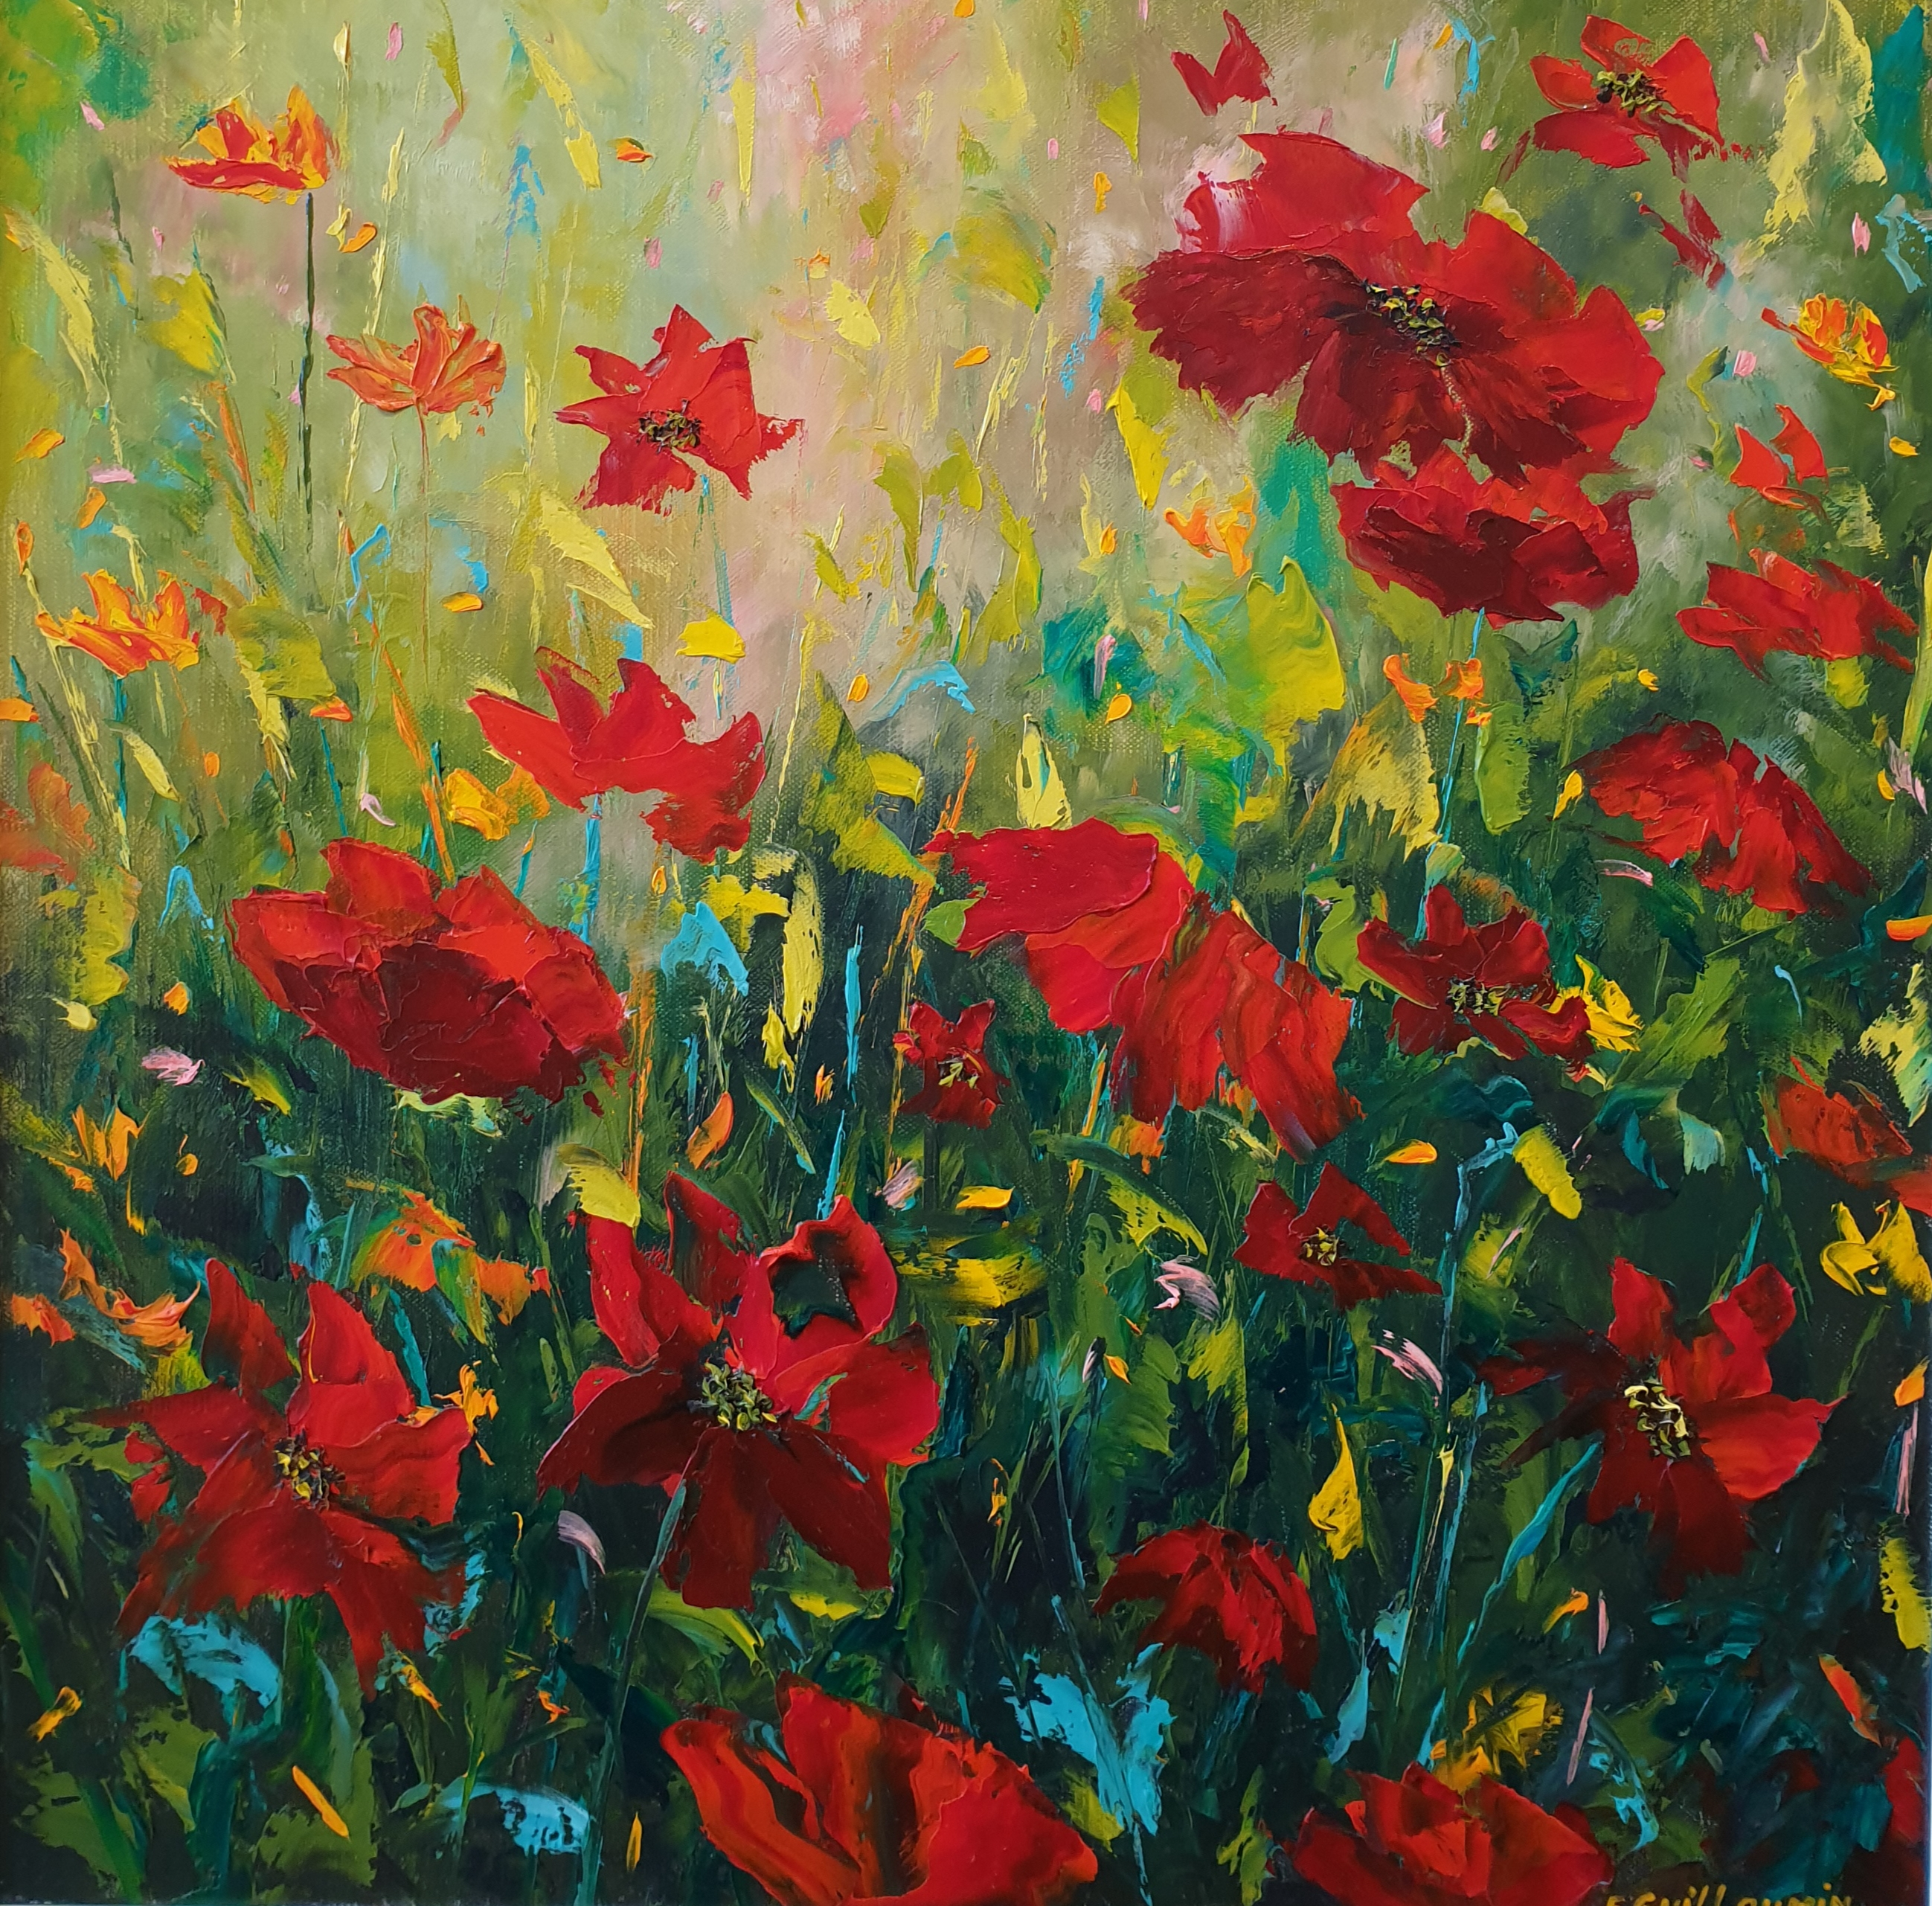 Meadow Sweet (Red Poppies)